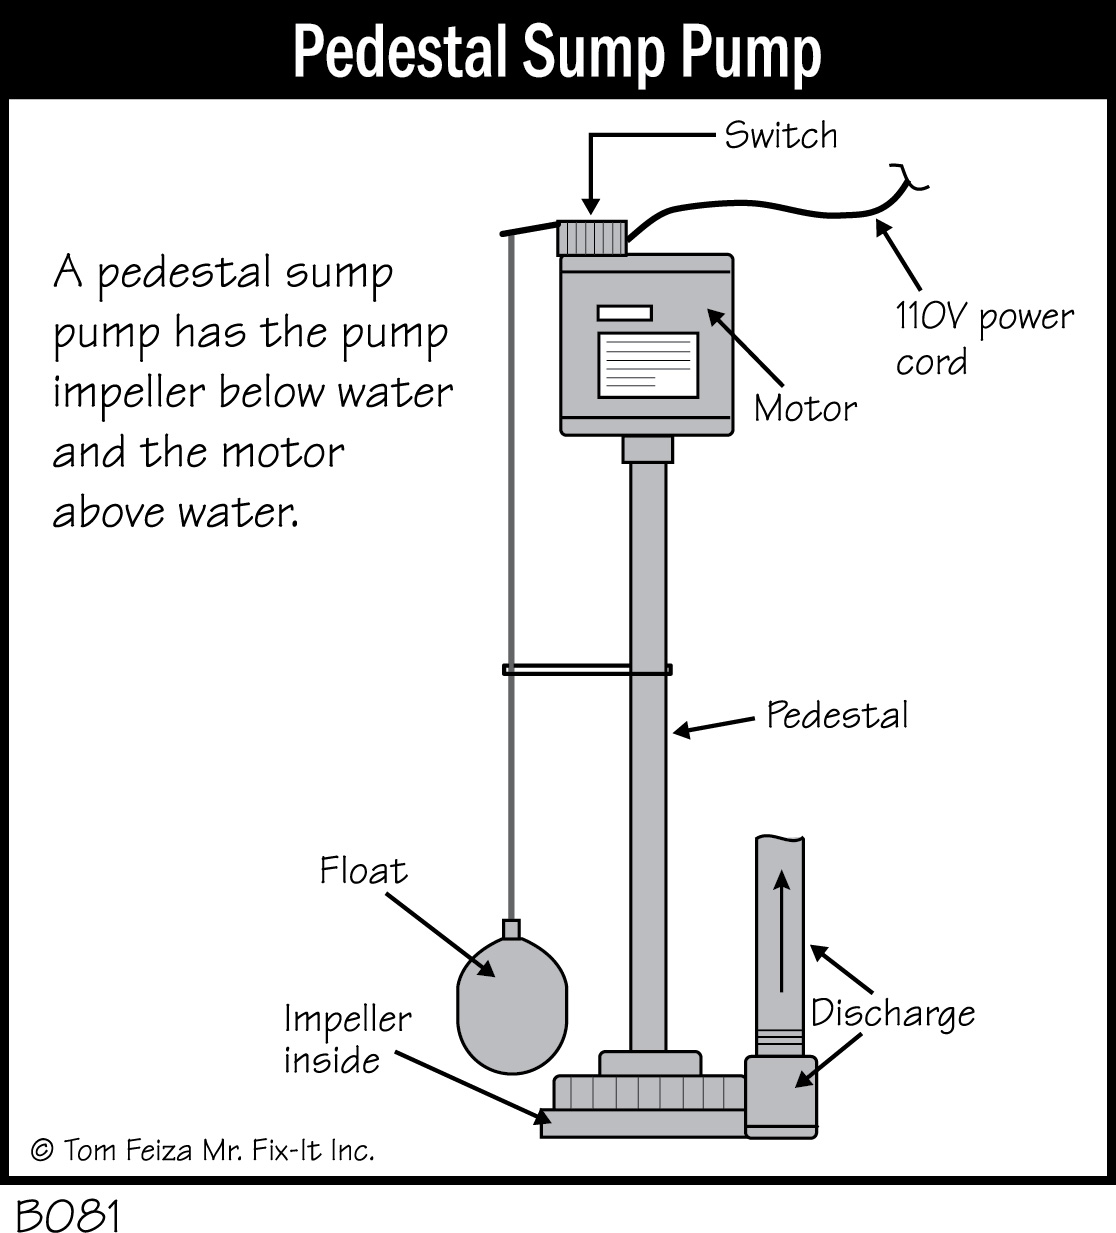 pedestal pump switch wiring diagram